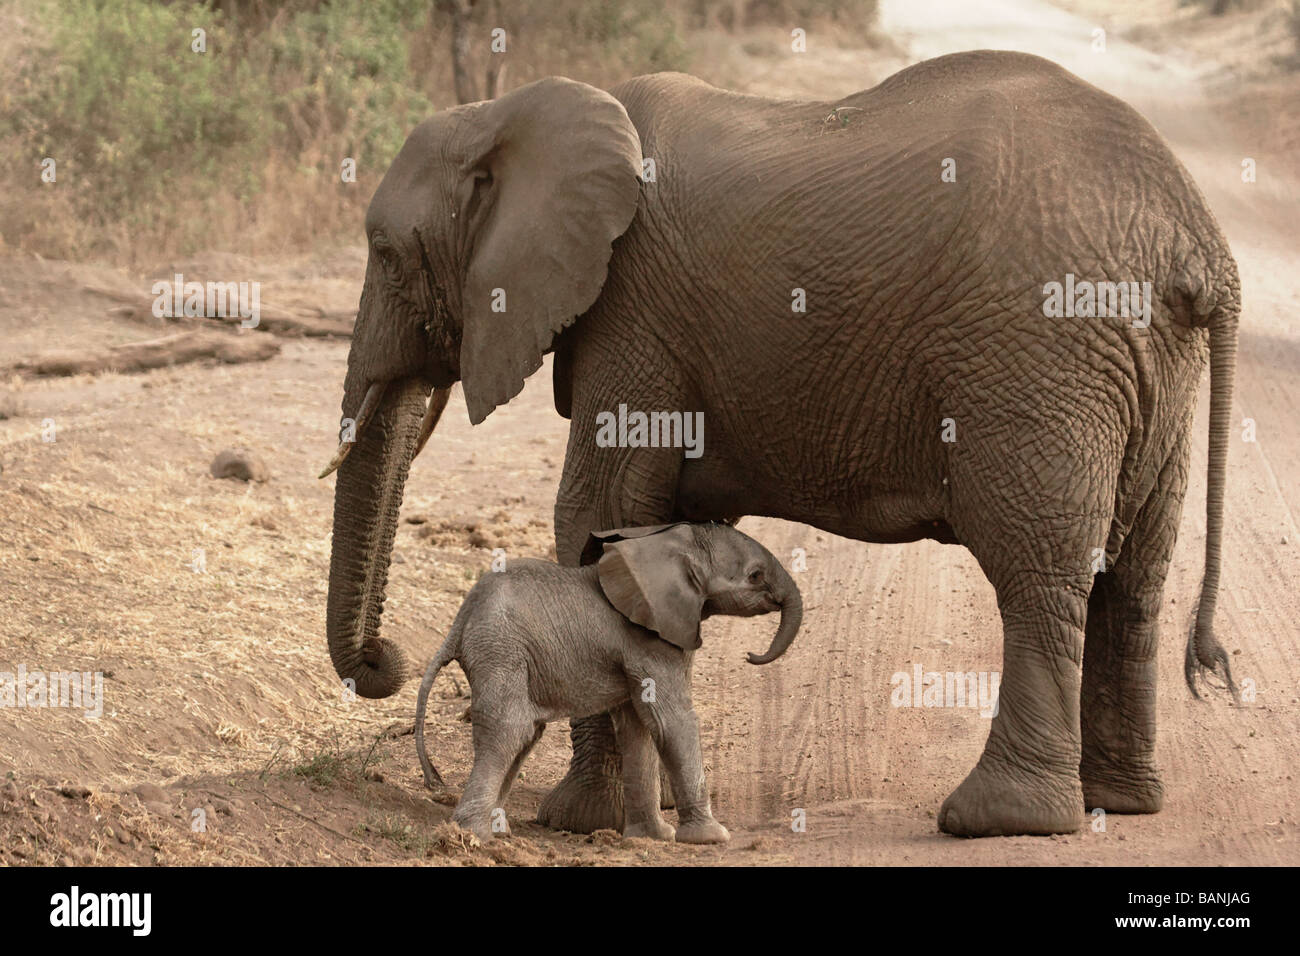 New born elephant calf with mother, baby is approximately only a few hours old, Lake Manyara National Park, Tanzania. - Stock Image